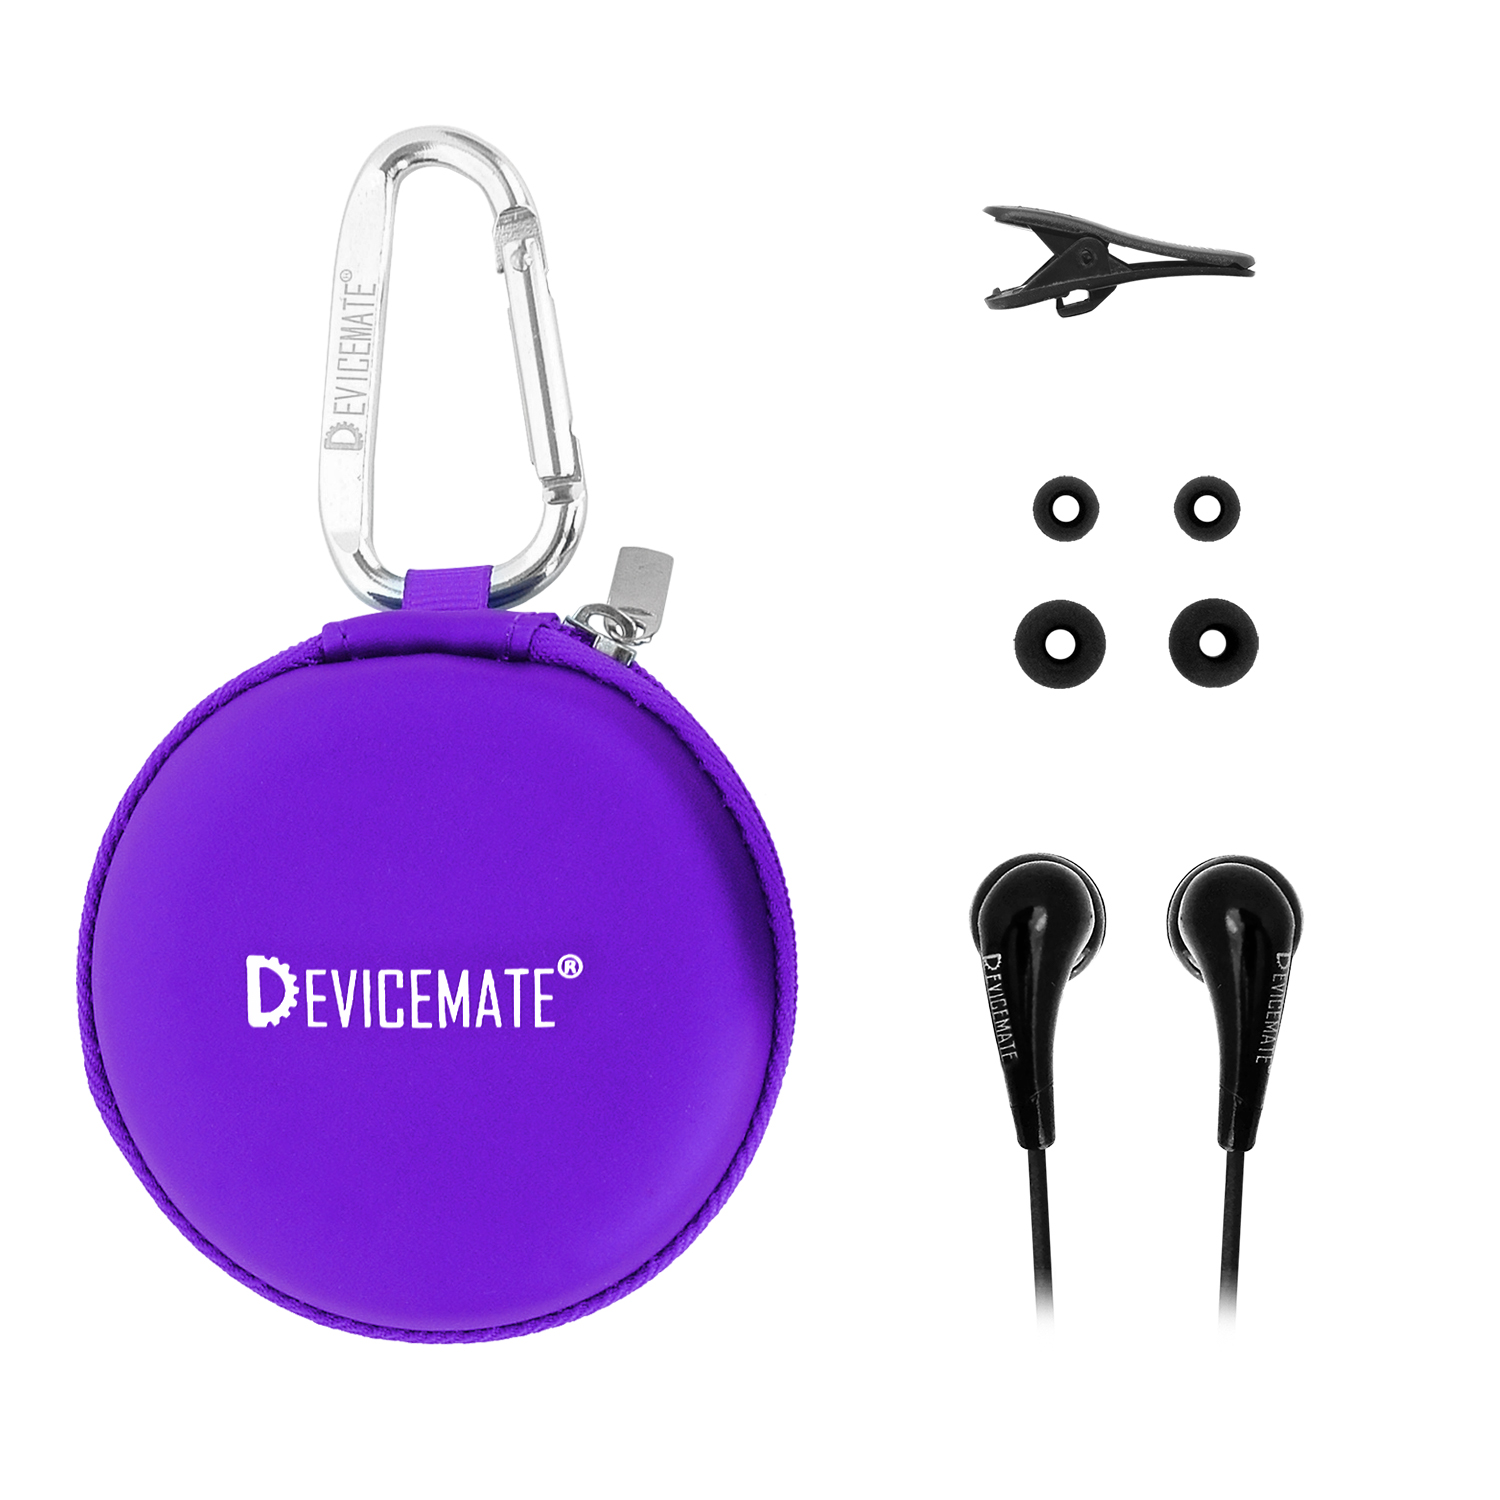 Devicemate SD 255-CPE In-Ear Stereo Earphones [Purple] Case